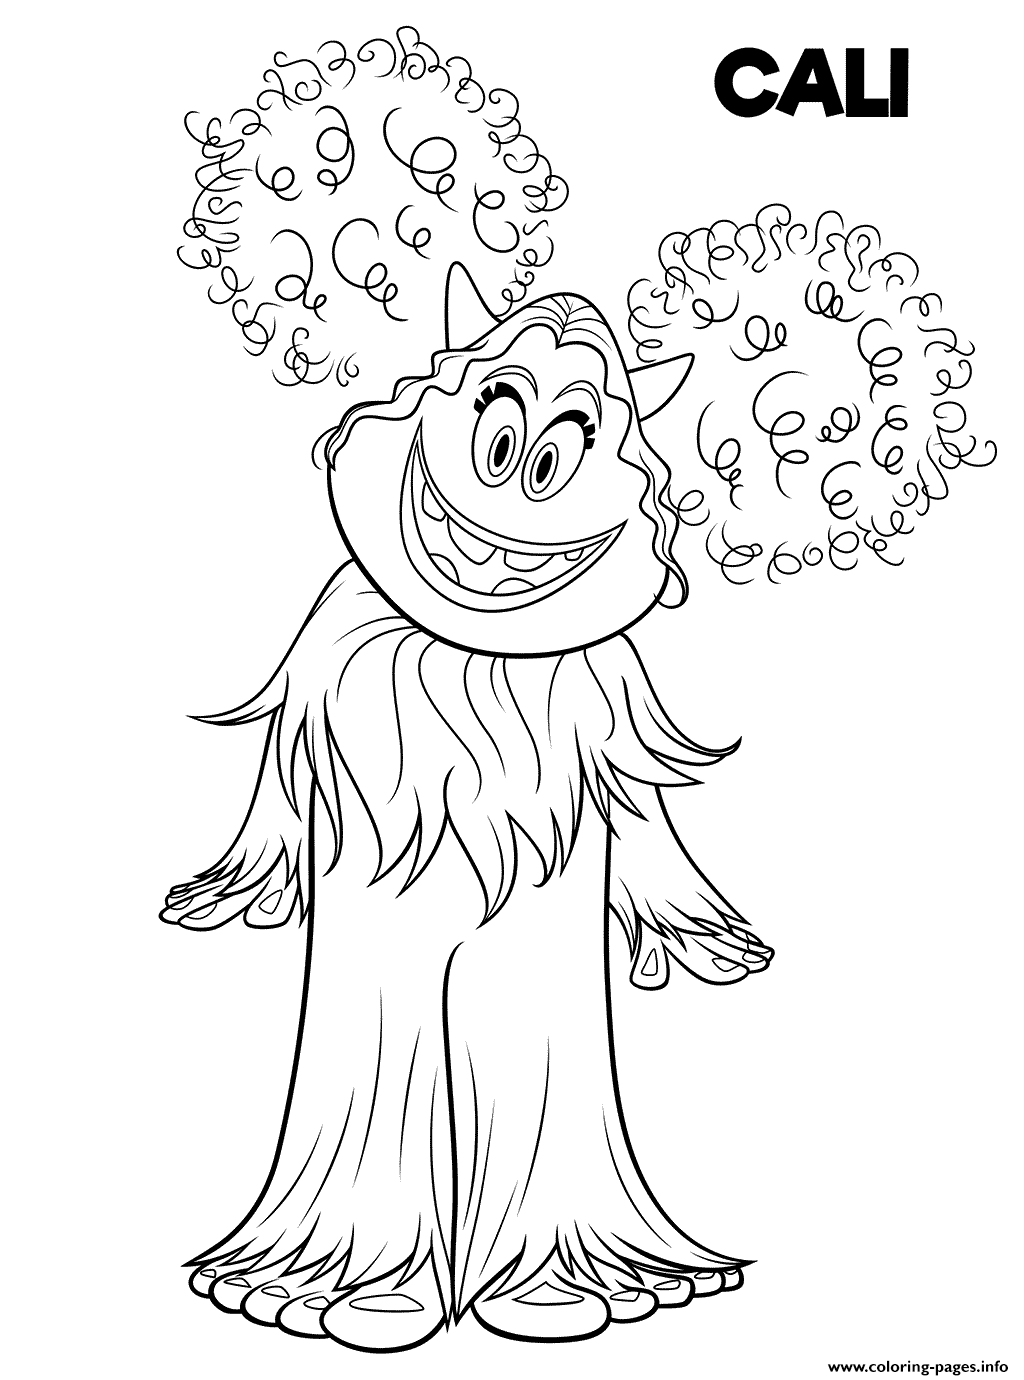 Smallfoot Cali Cute Yet coloring pages